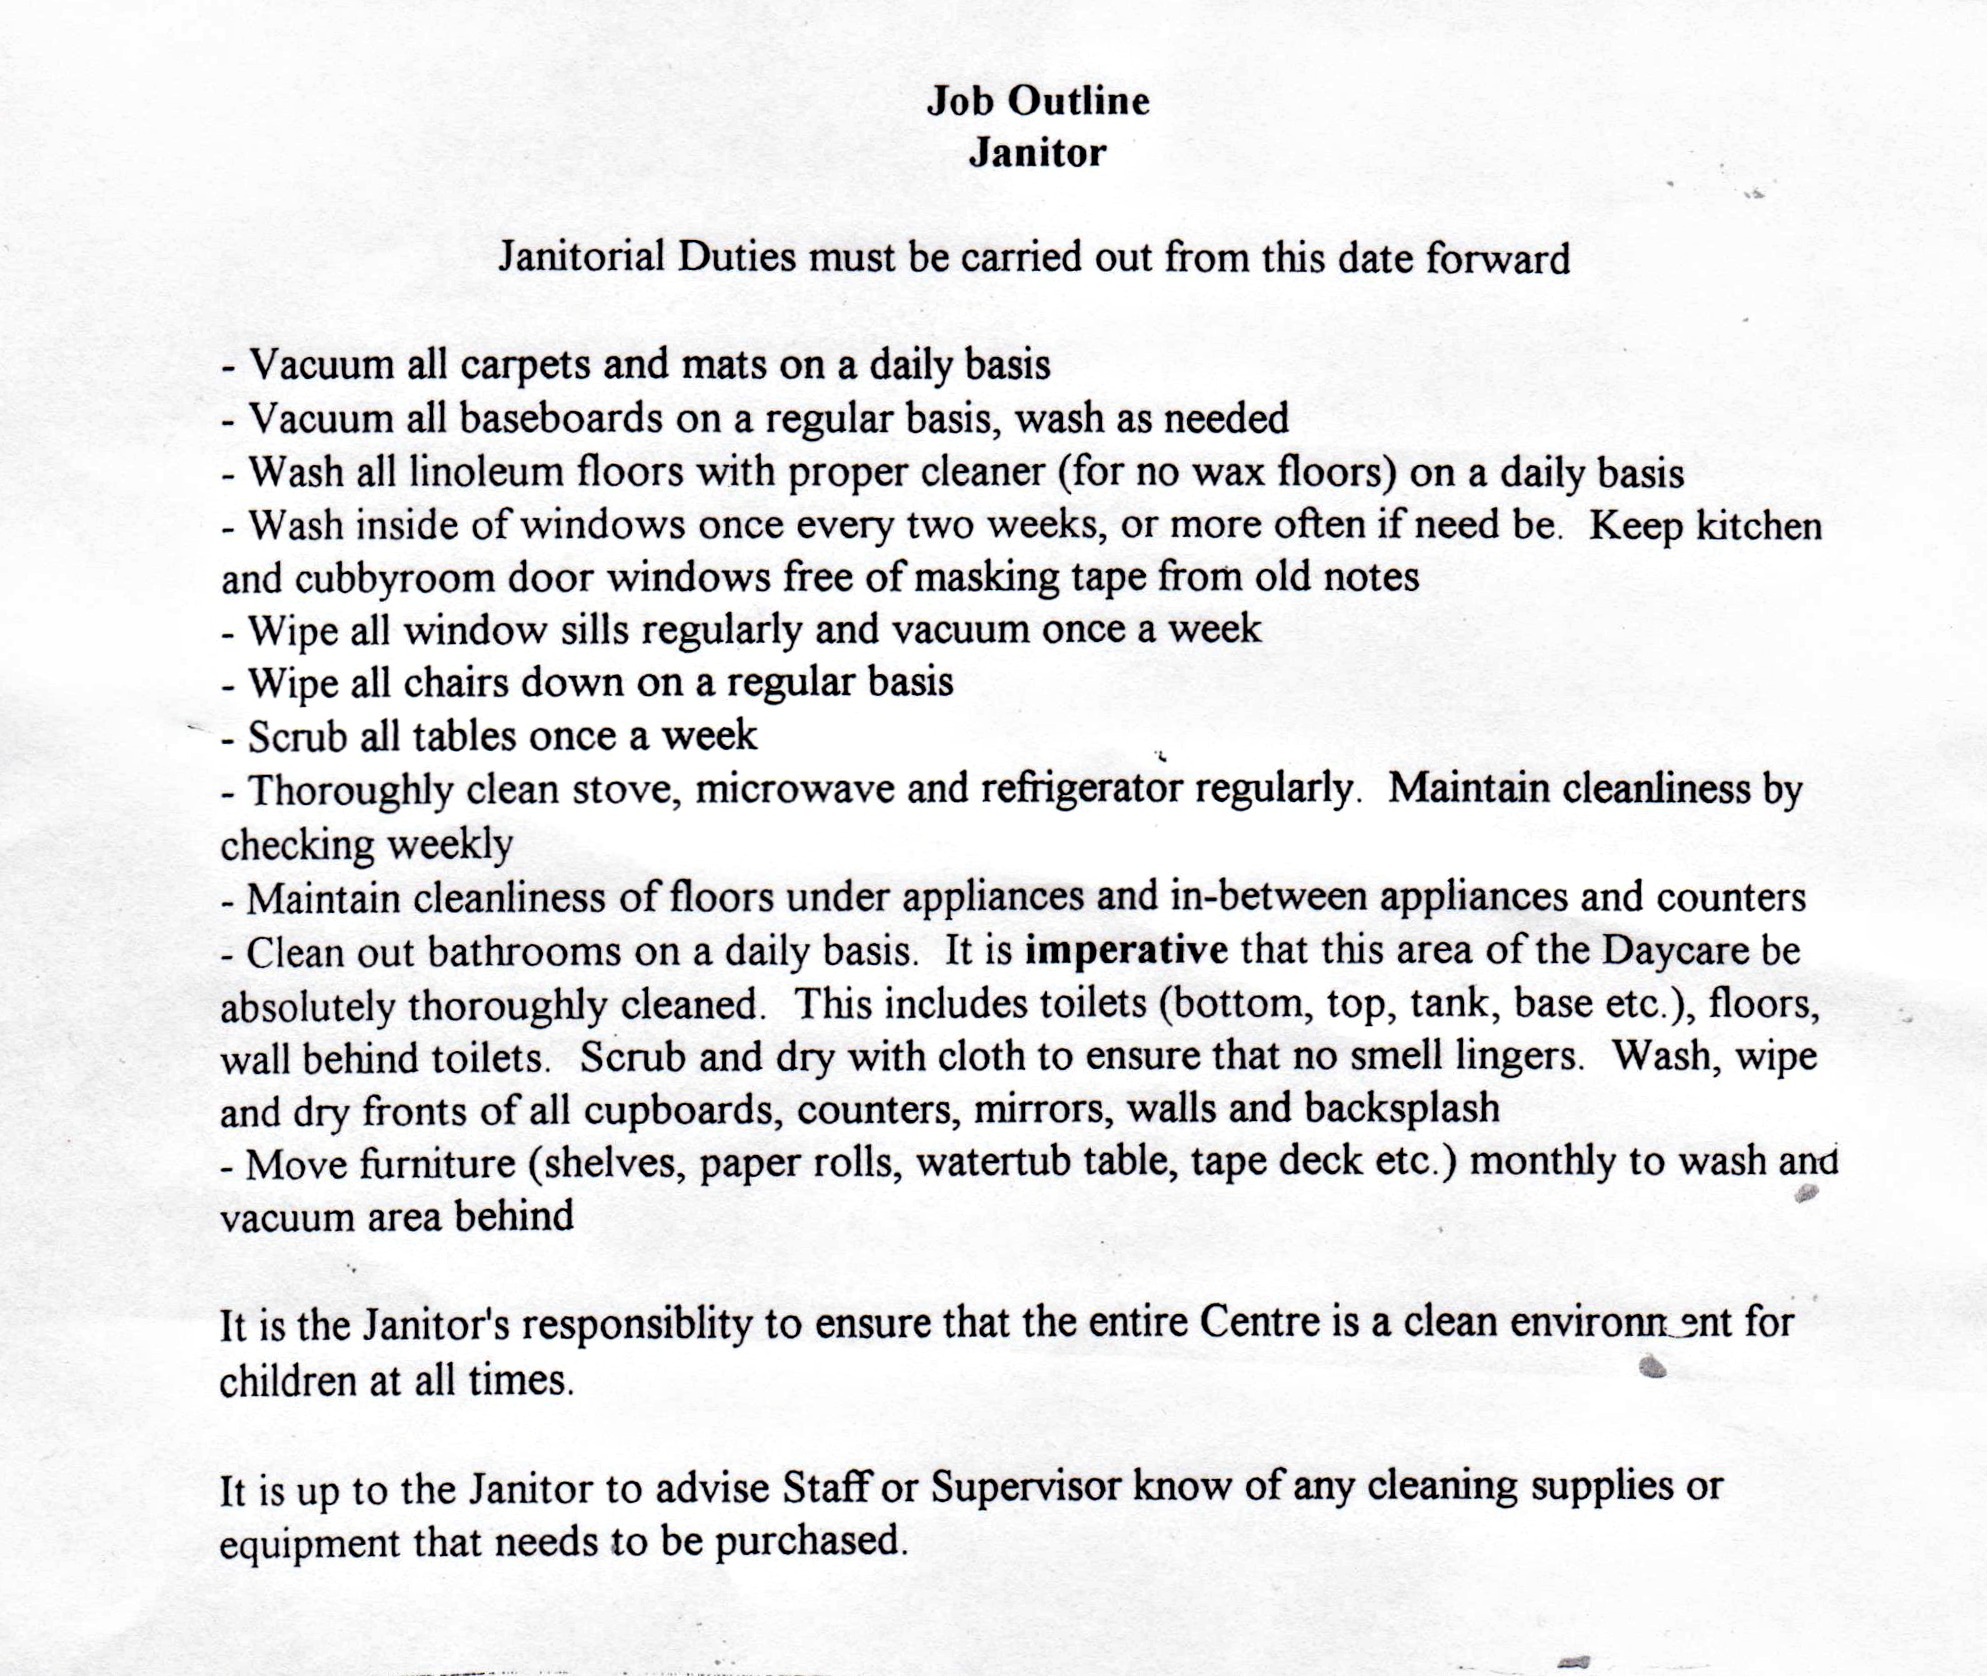 janitor description images janitorial duties must be